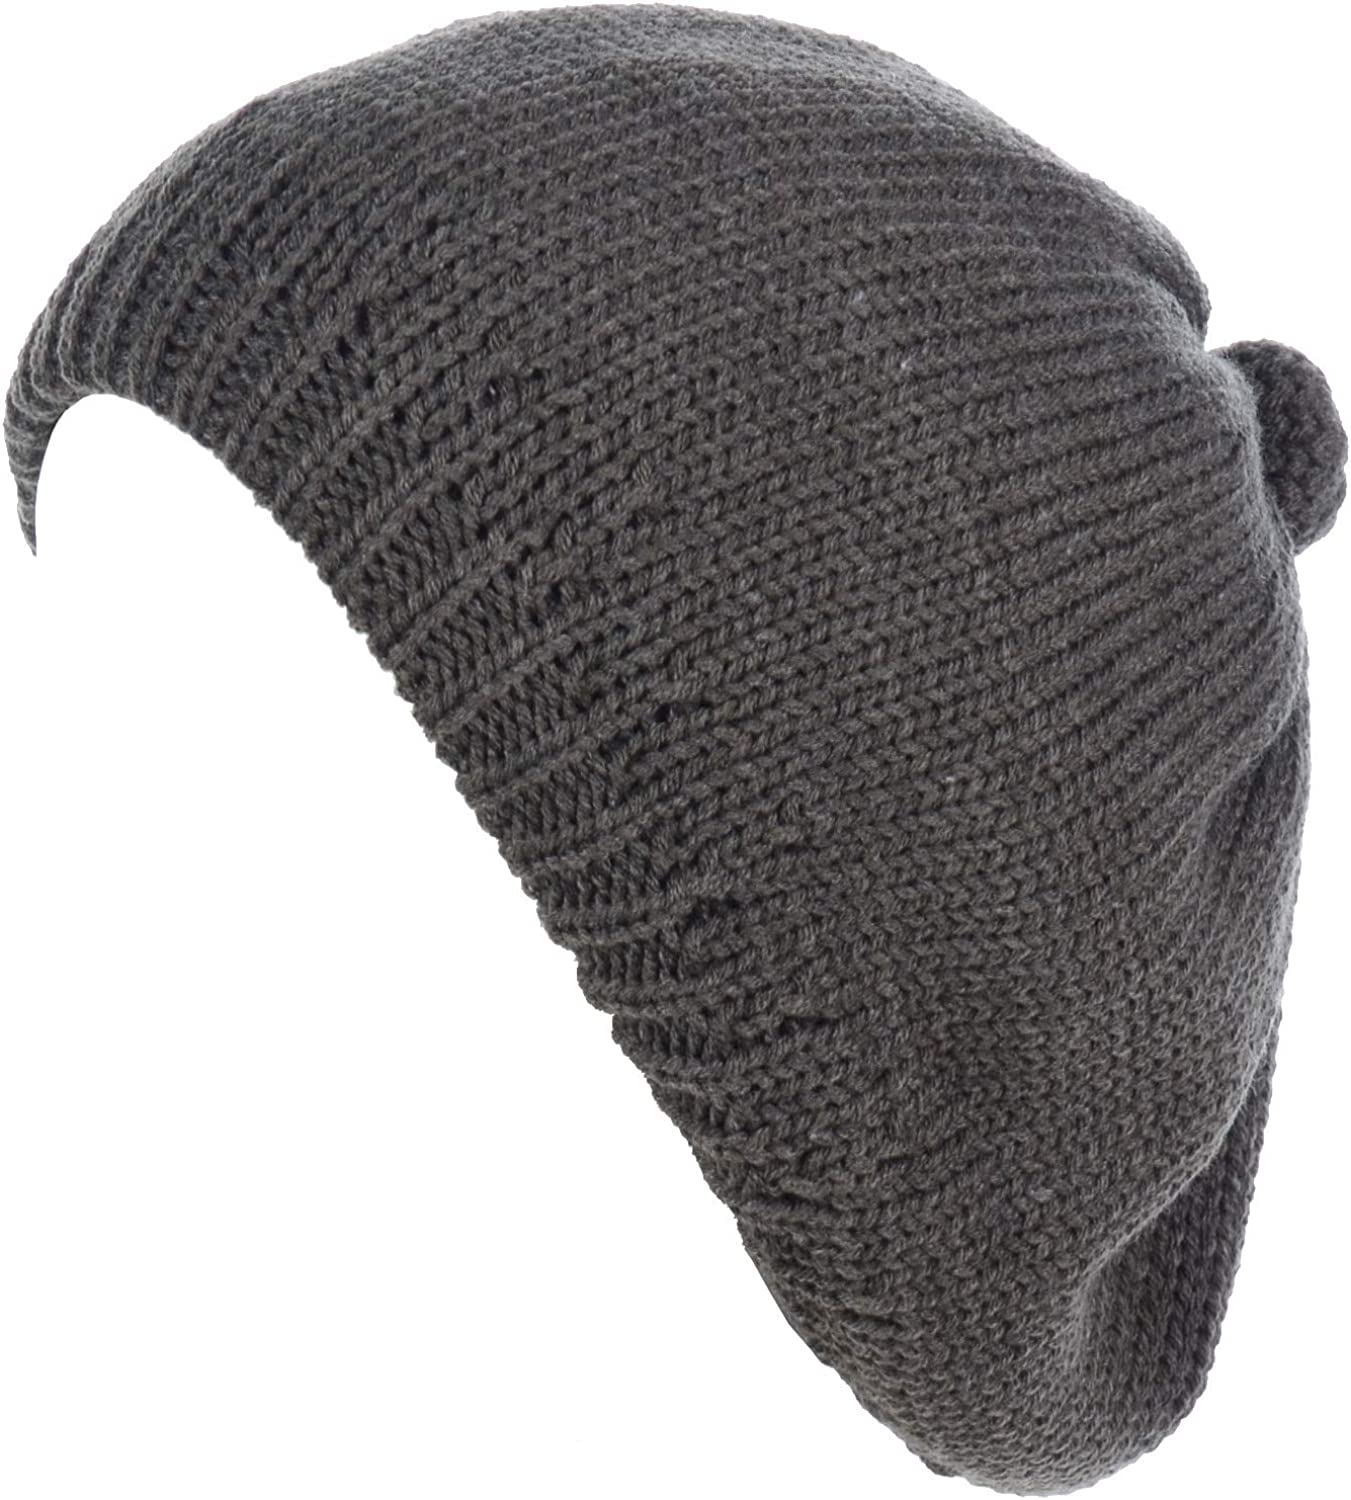 BYOS Women's Winter Cable...